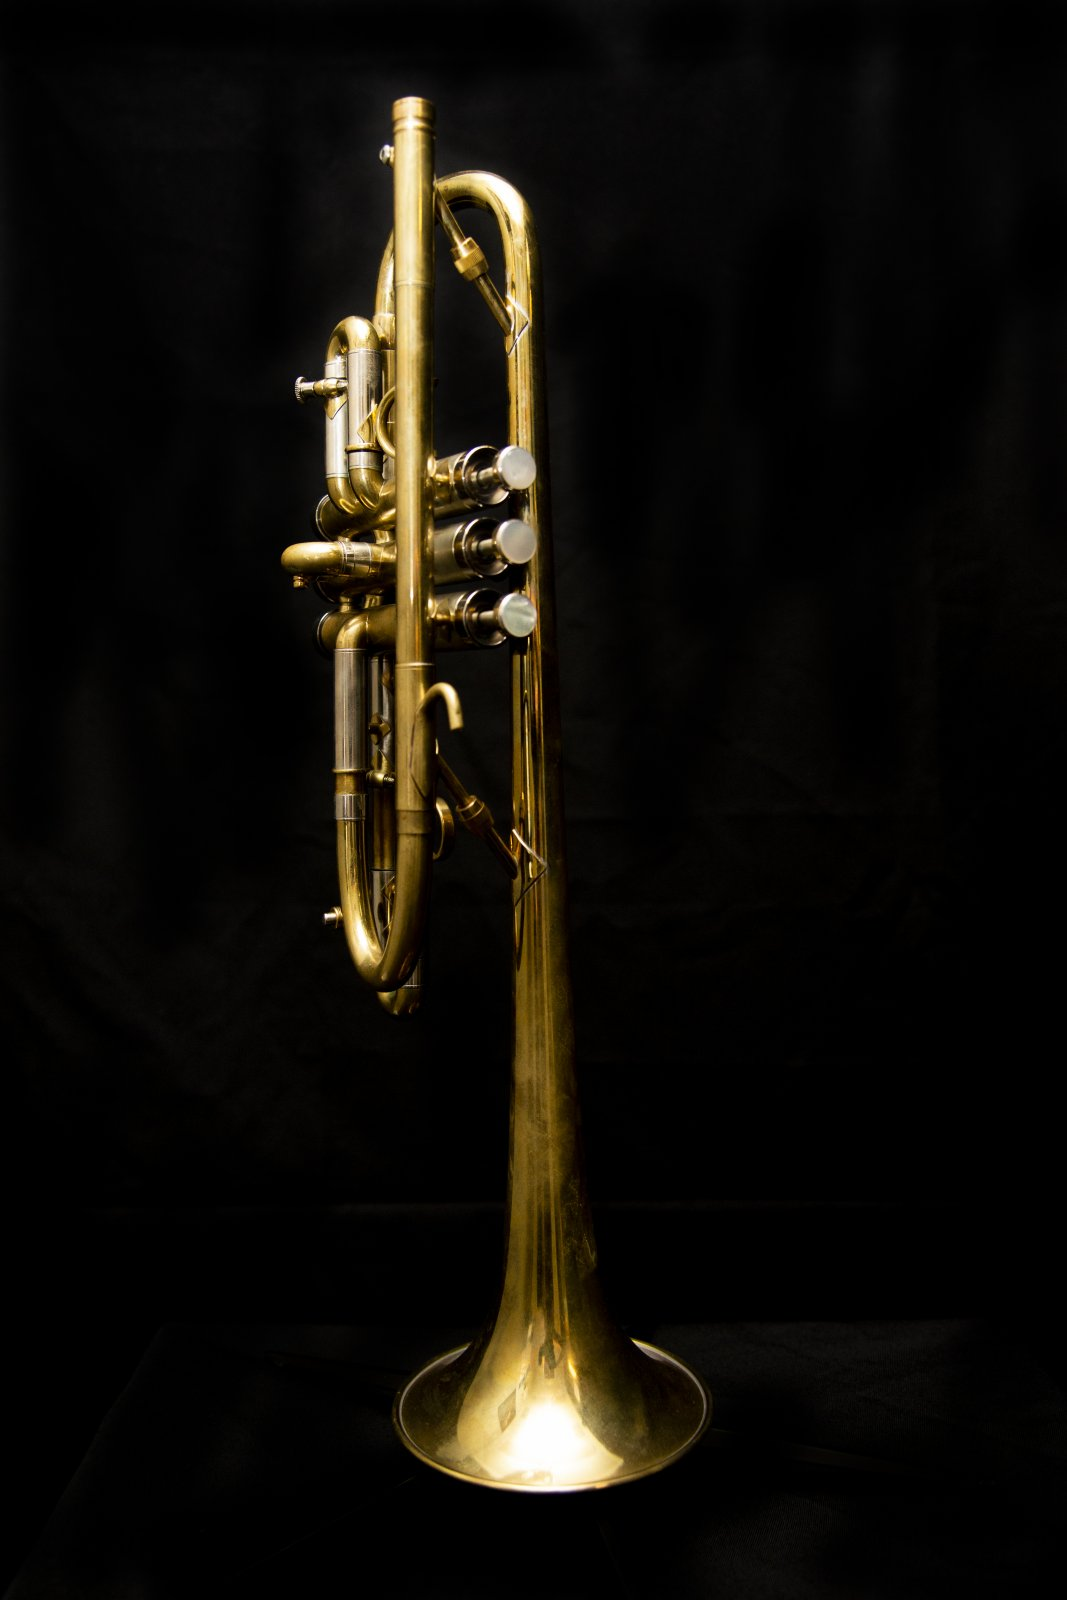 Edwards Generation III C Trumpet